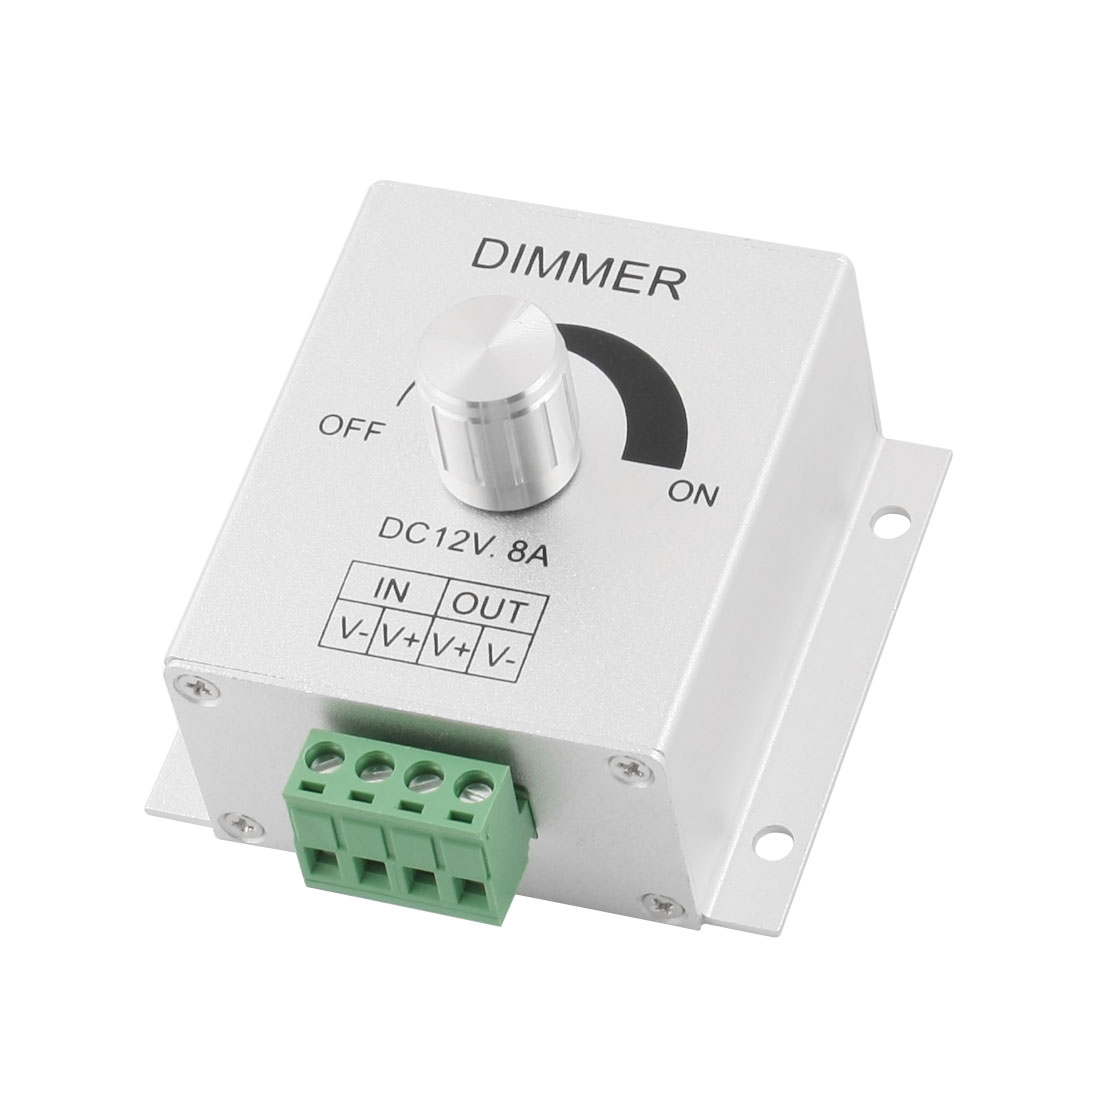 DC12V 8A 1 Channel LED Light Dimmer Controller for Spotlight Bulb